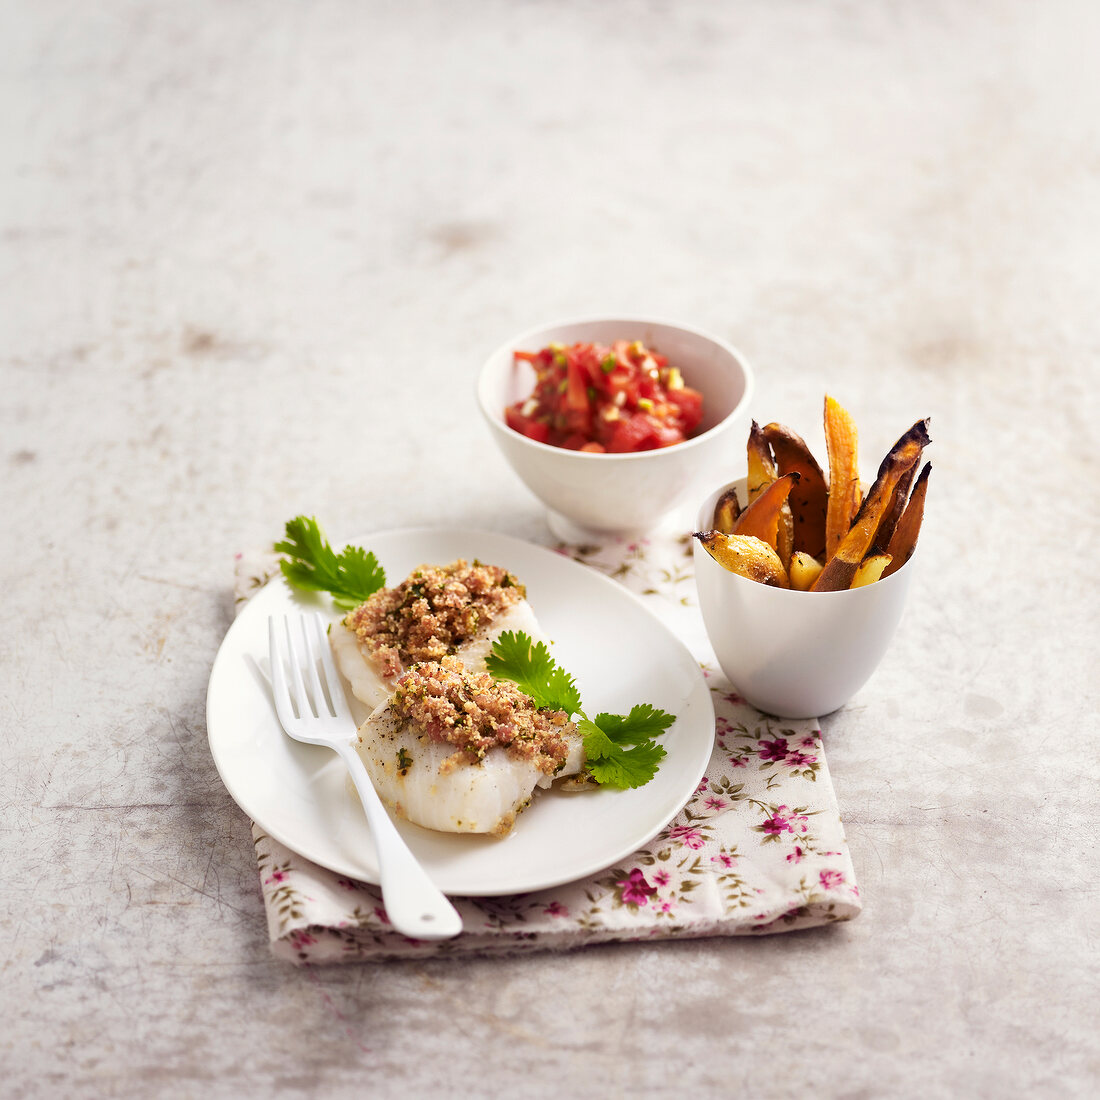 Cod topped with raw ham crumble, sweet potato fries,tomato salad